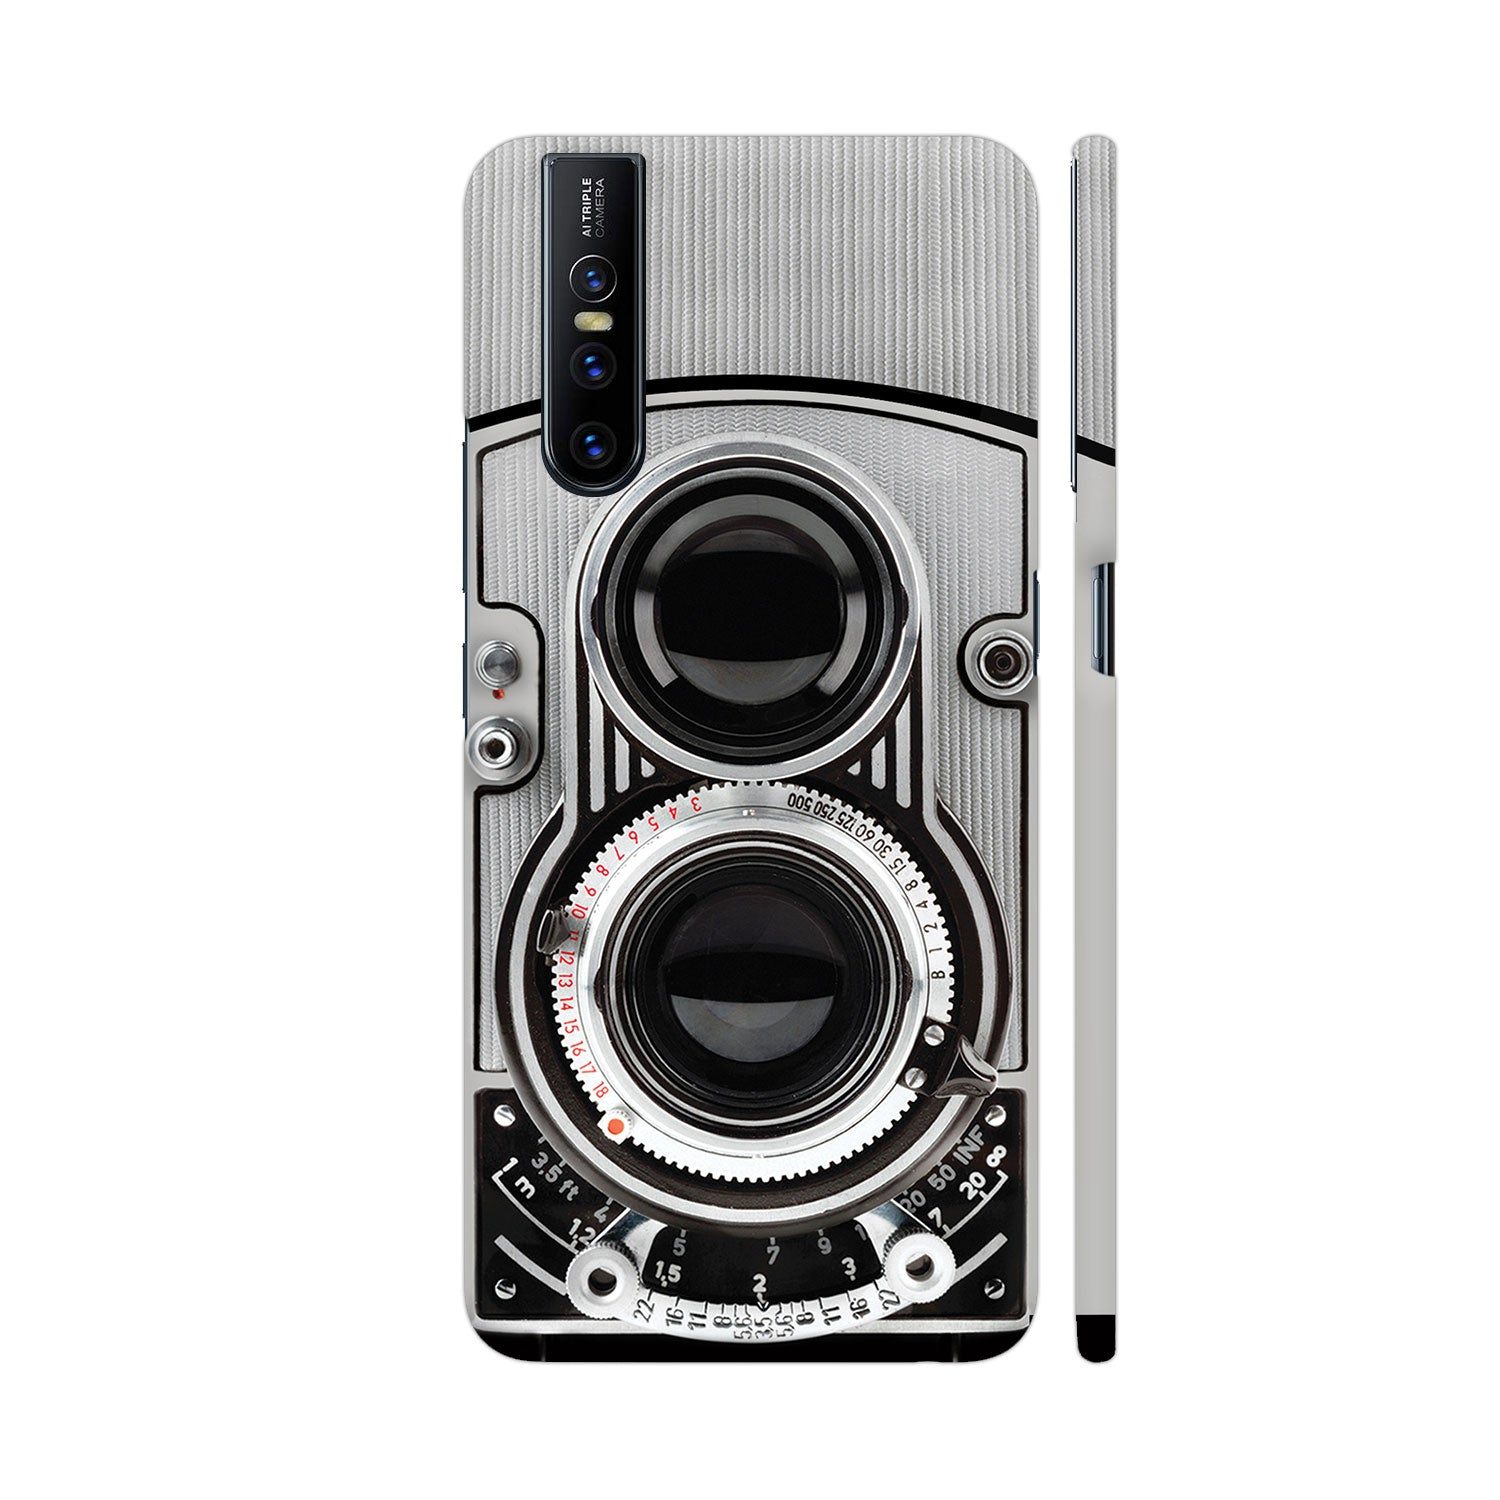 Vintage Twin Lens Reflex Camera Slim Case And Cover For Vivo V15 Pro